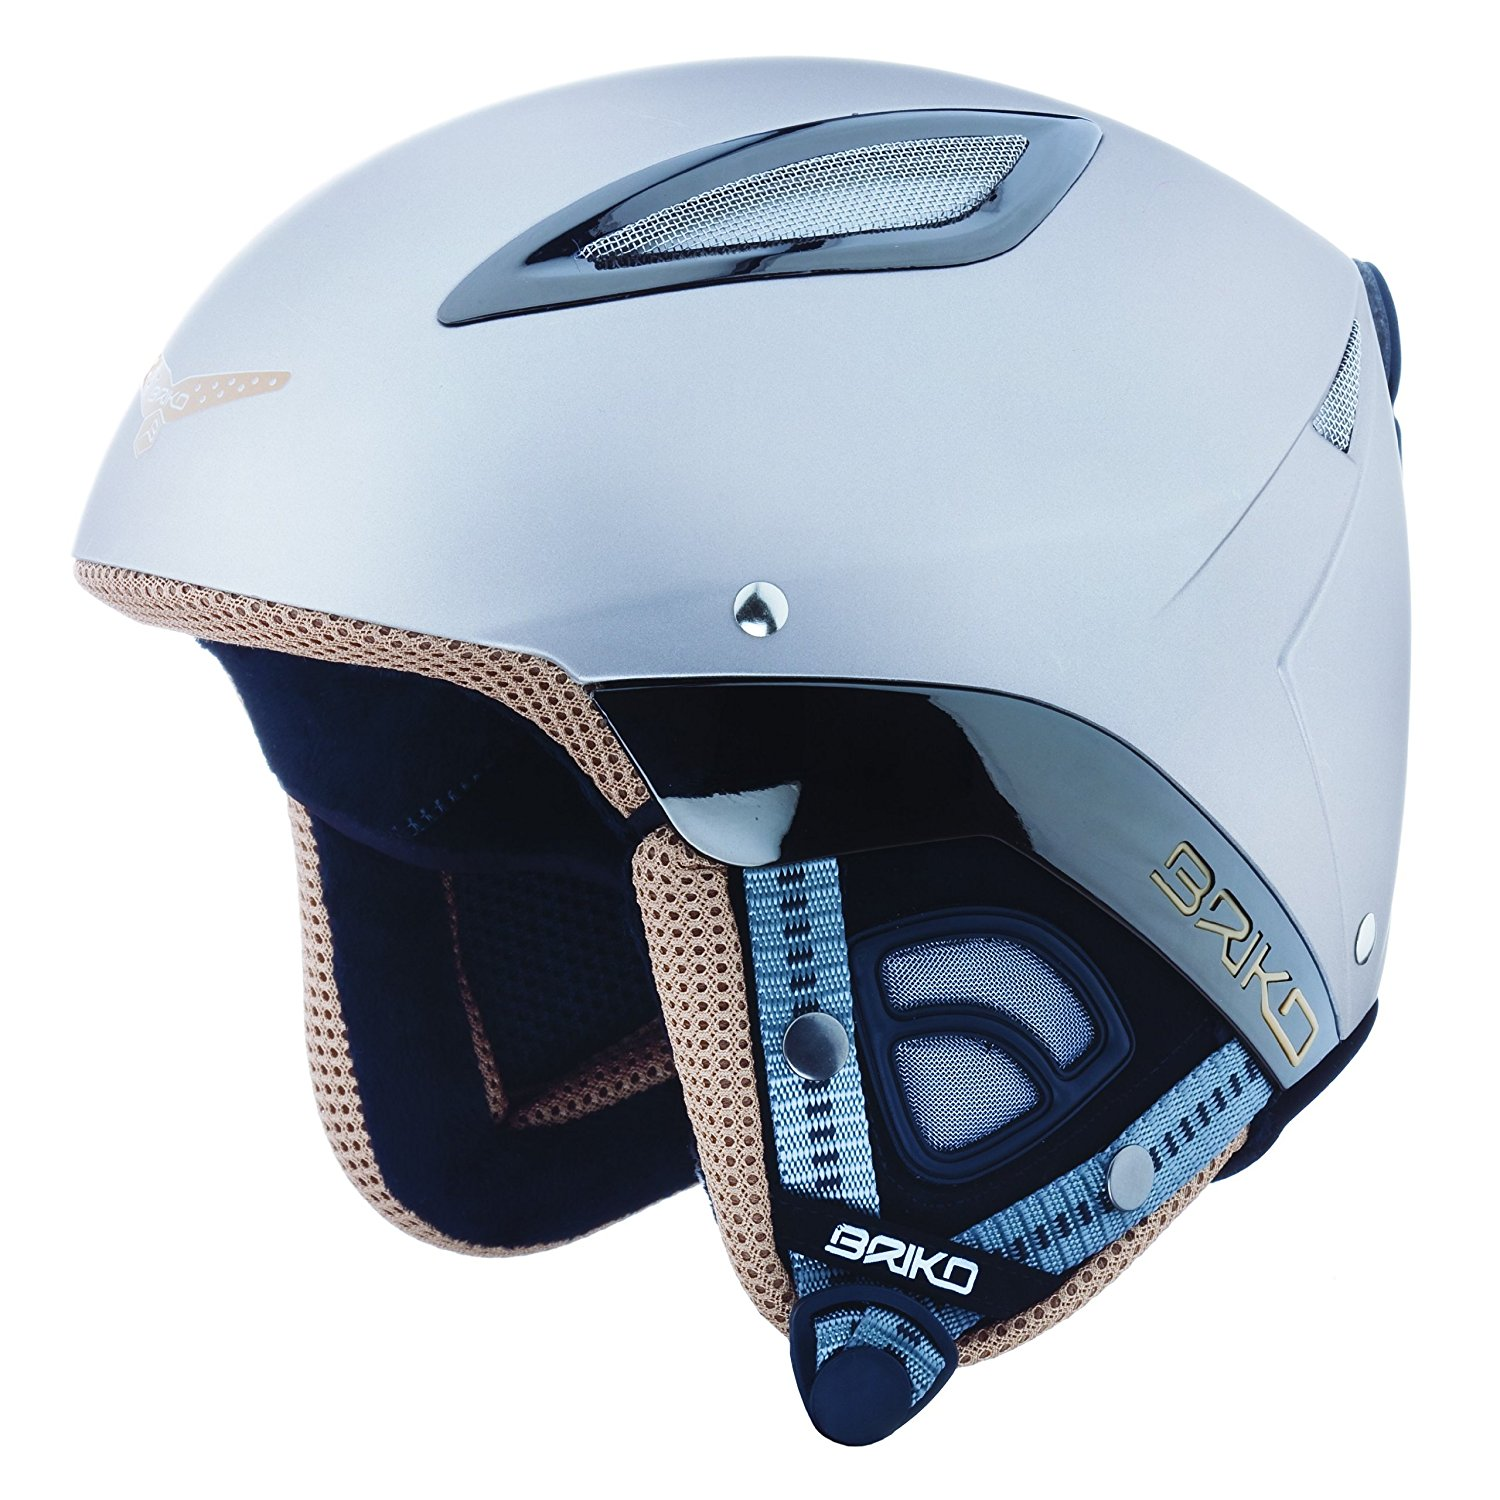 Briko Dakota Ski Helmet (Titanium, 56cm) by SOGEN SPORTS INC.